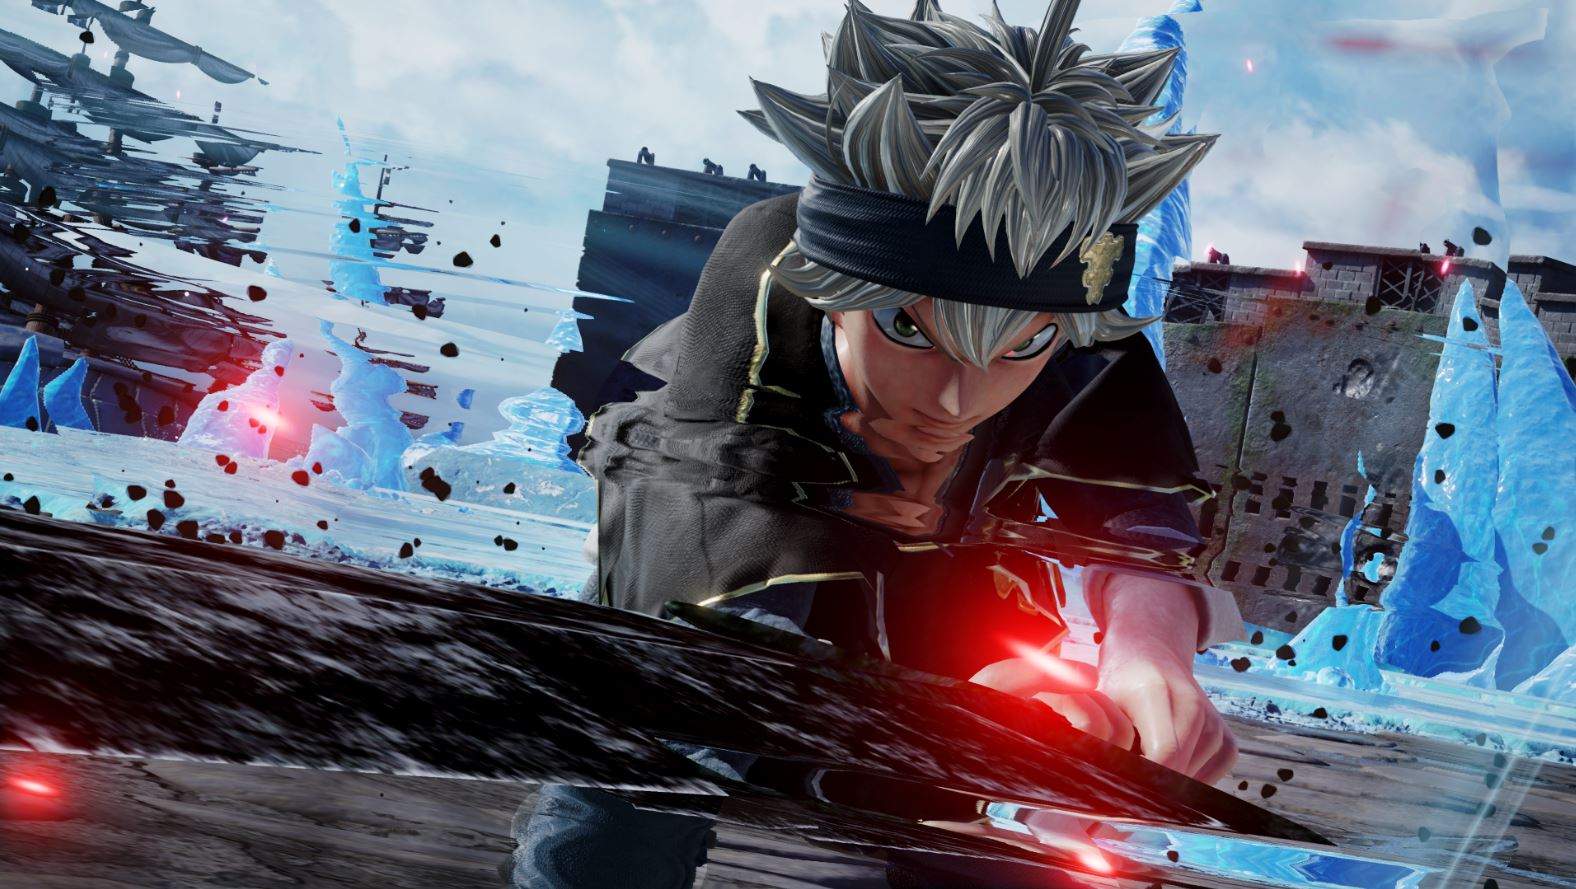 The Latest Character to Join Jump Force is Asta from Black